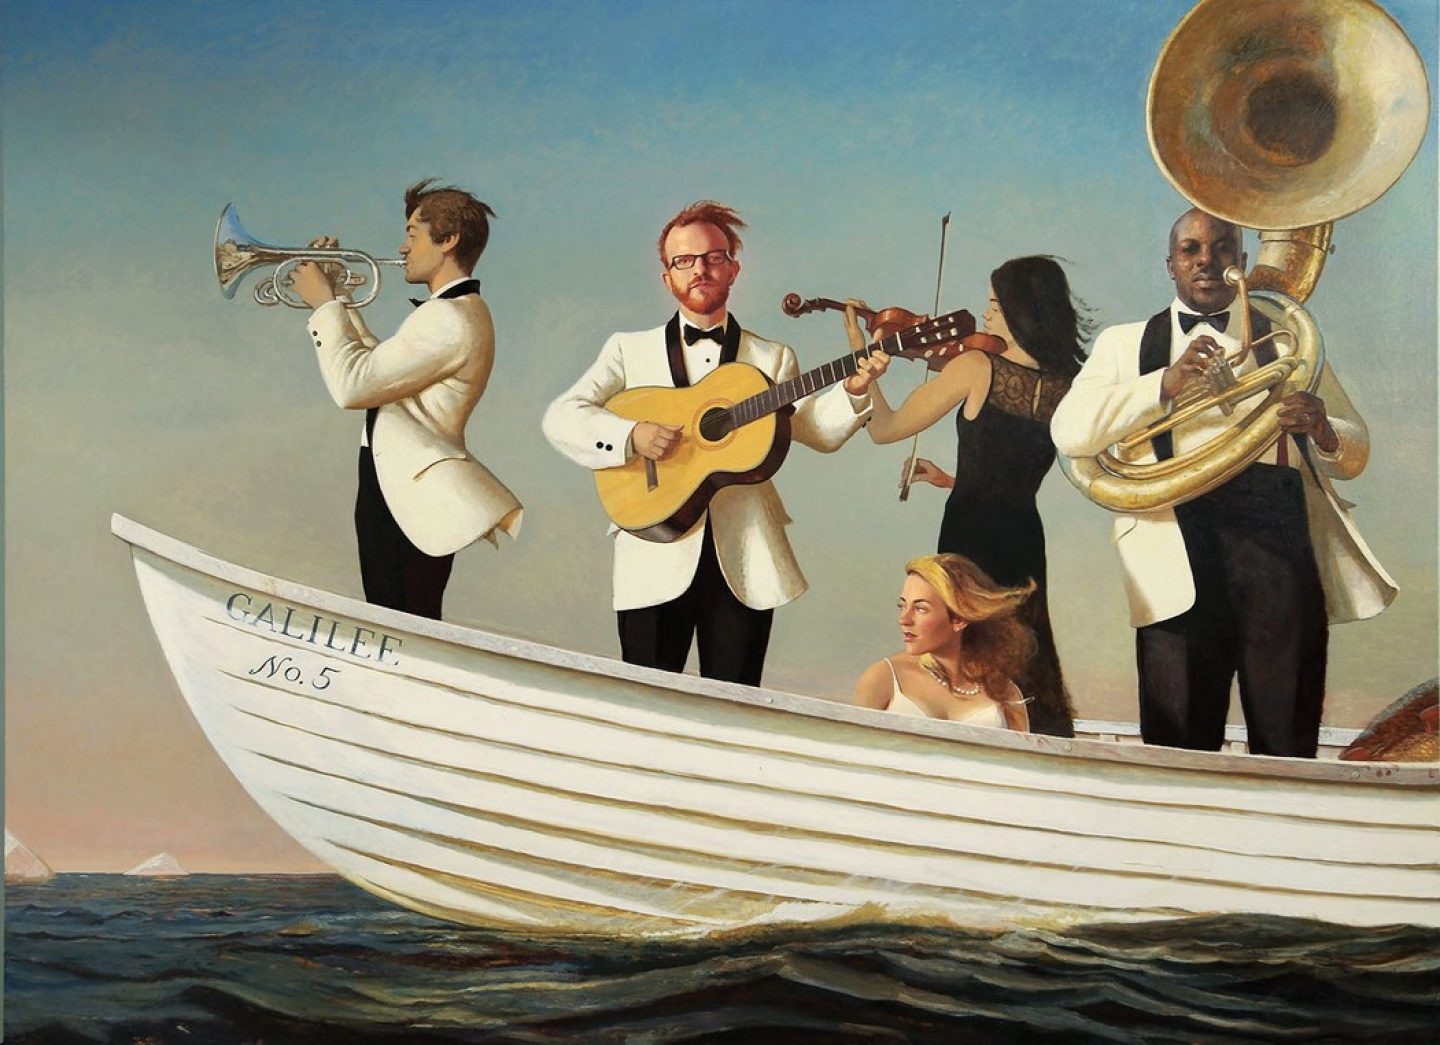 Bo Bartlett_Art (4)